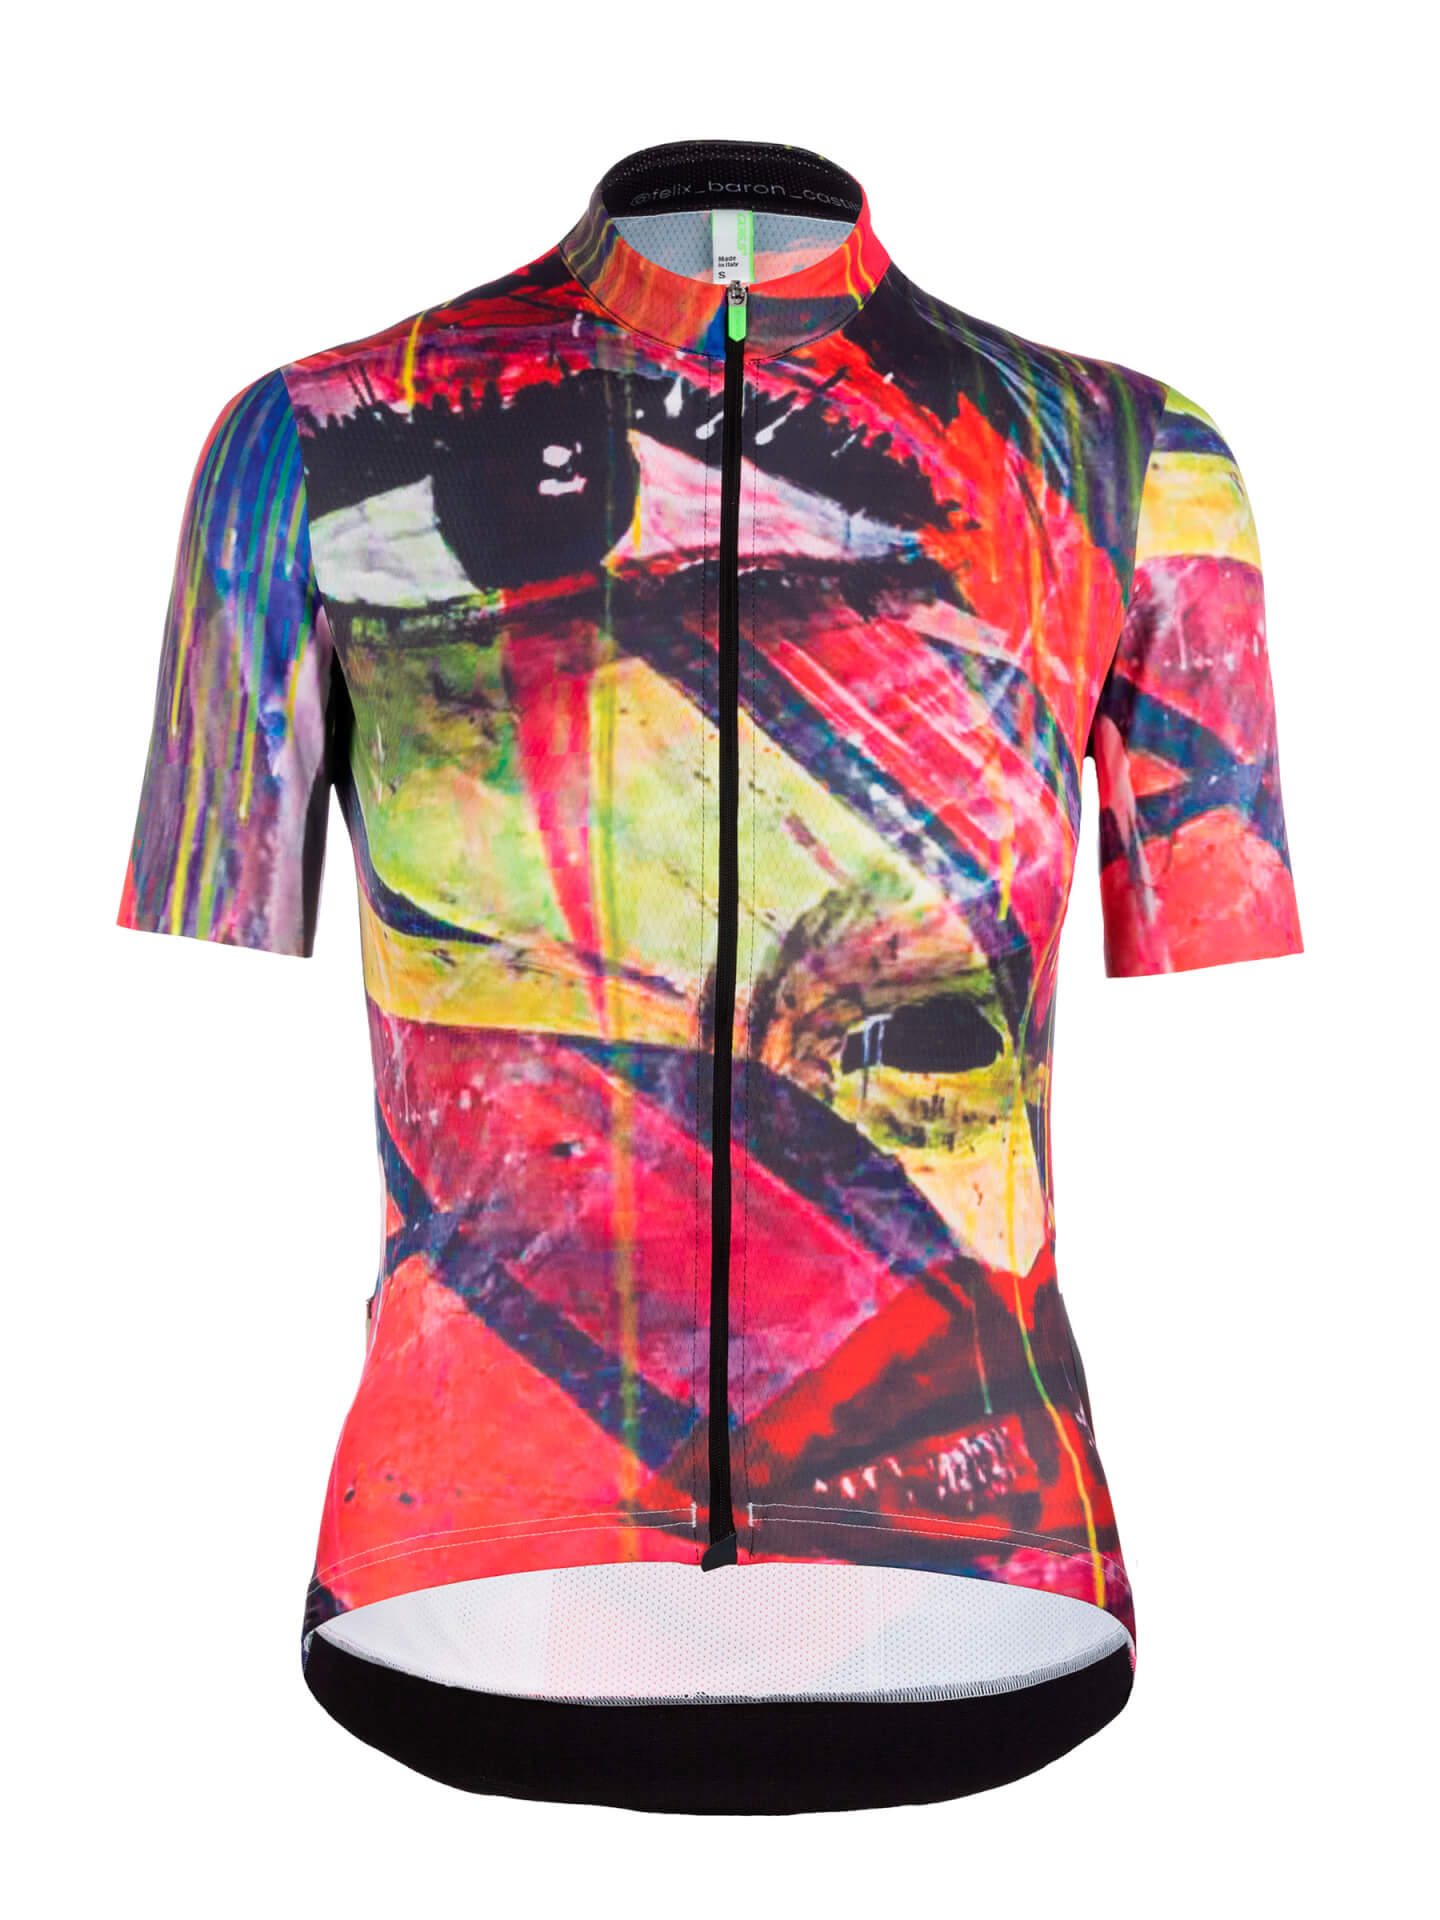 Womens cycling jersey short sleeve G1 Lady Felix Q36.5